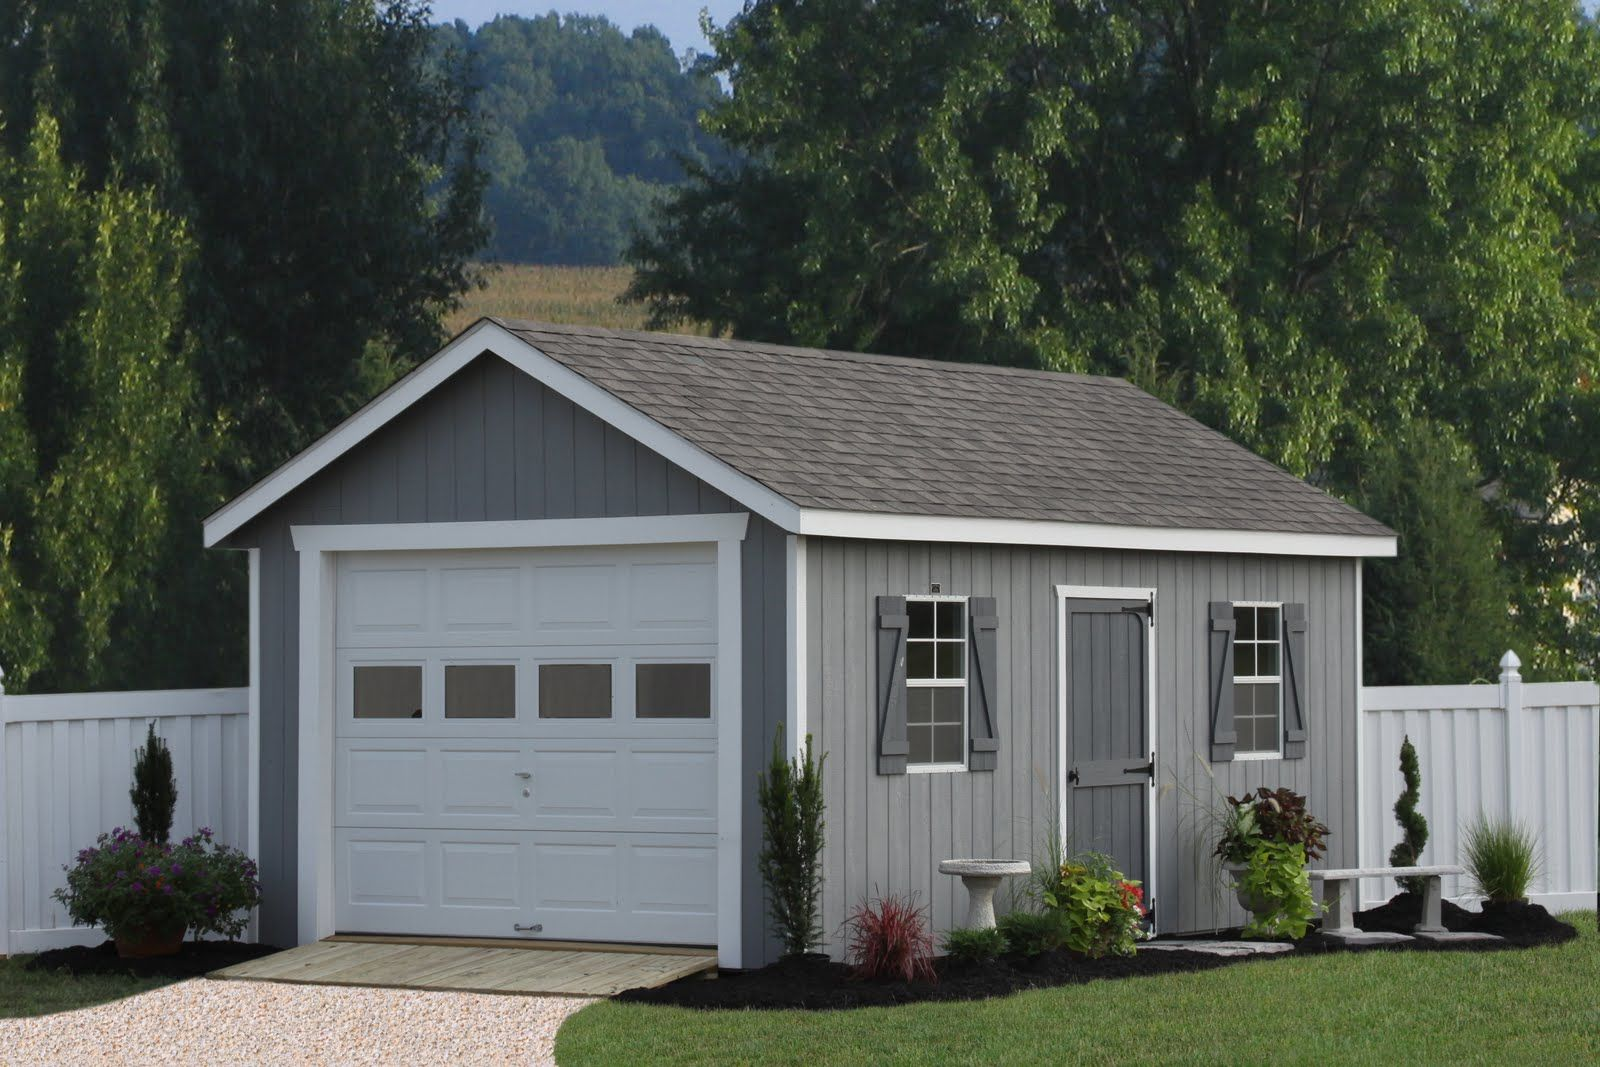 Add on garage plans 12x20 classic one car garage for Car garage design